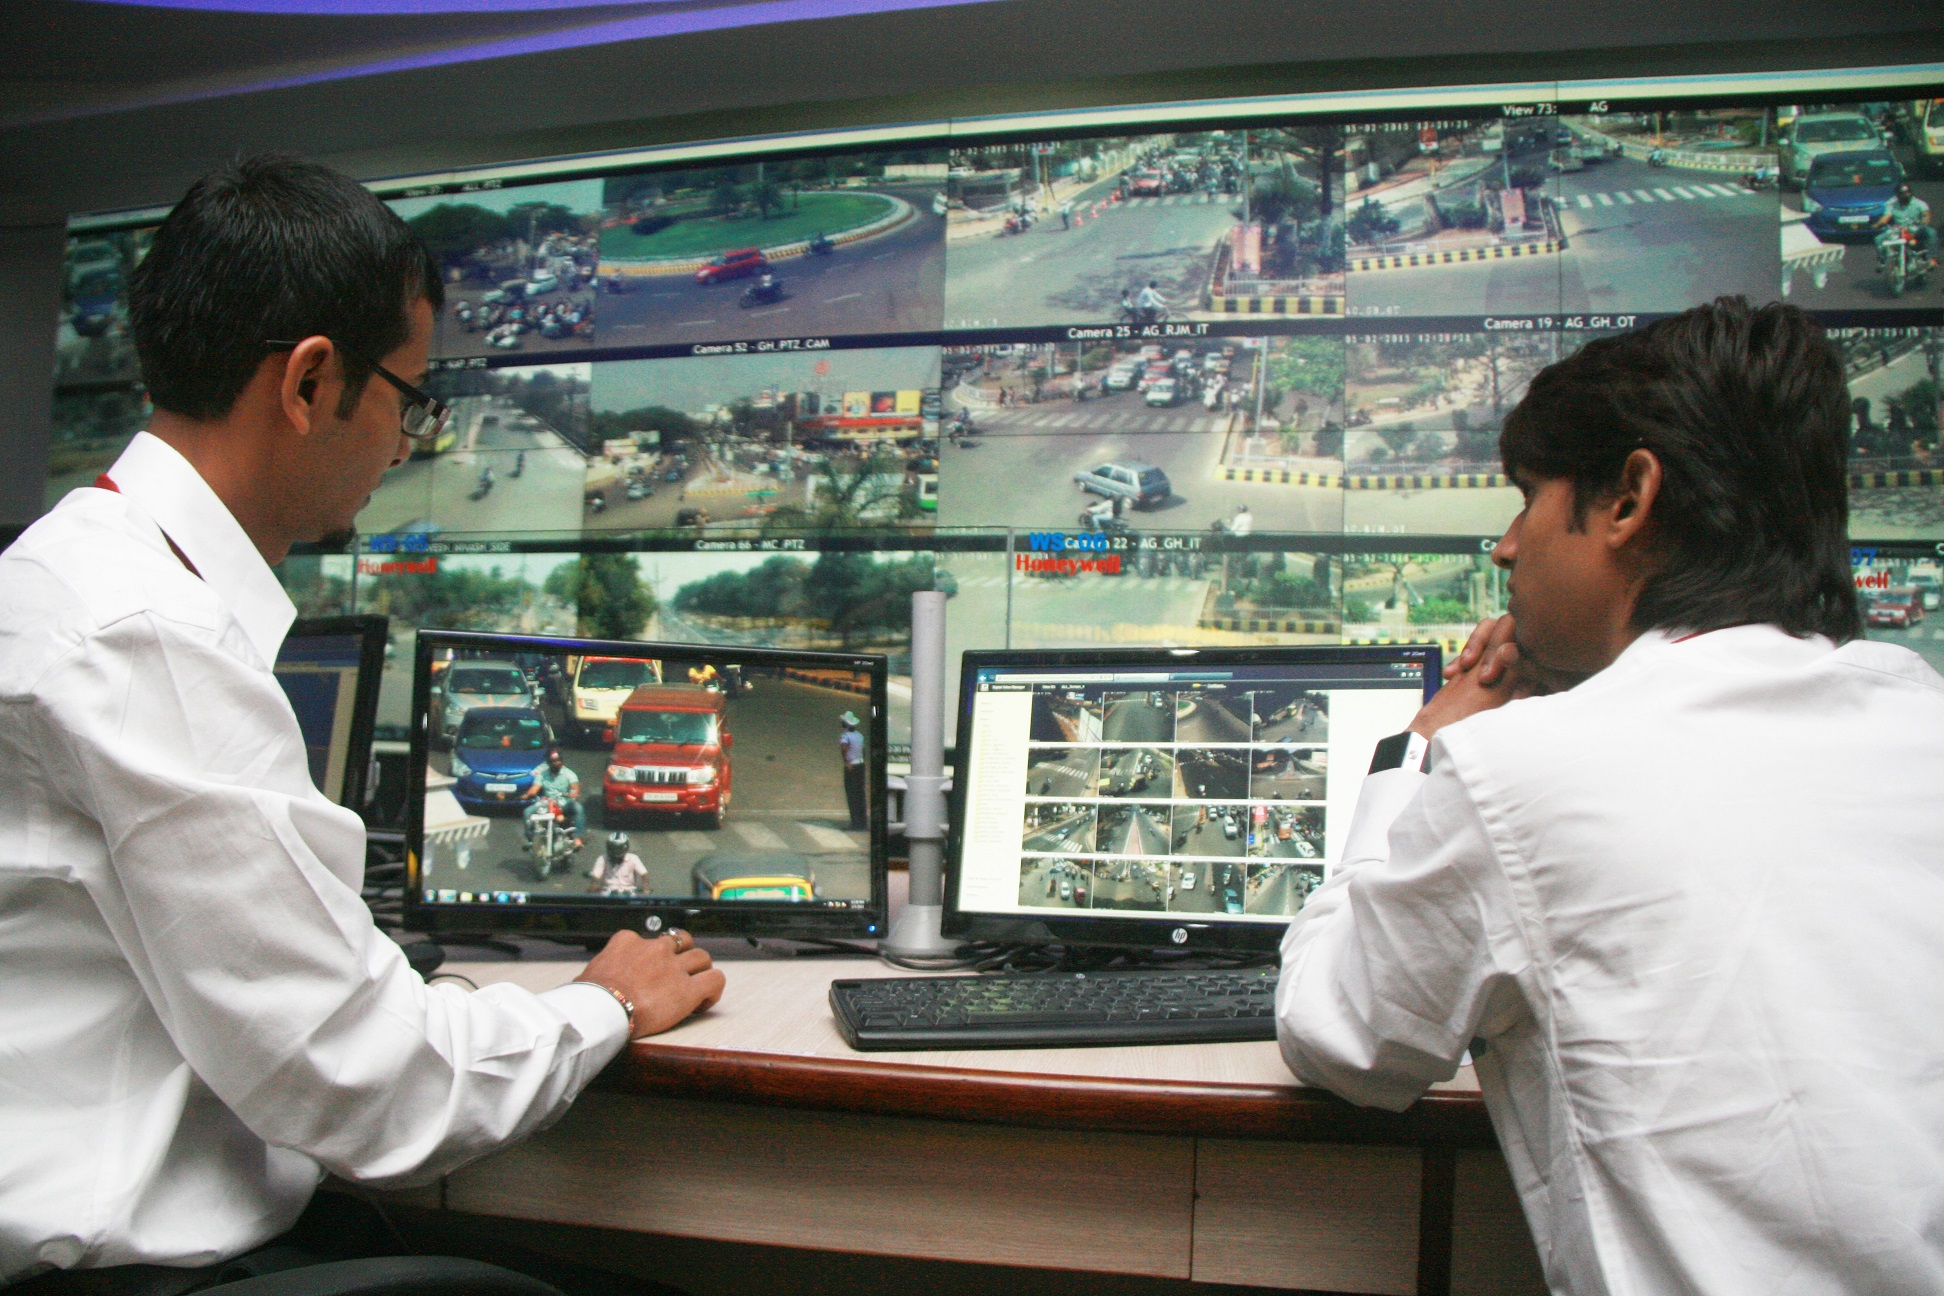 cctv monitoring bhubaneswar buzz traffic